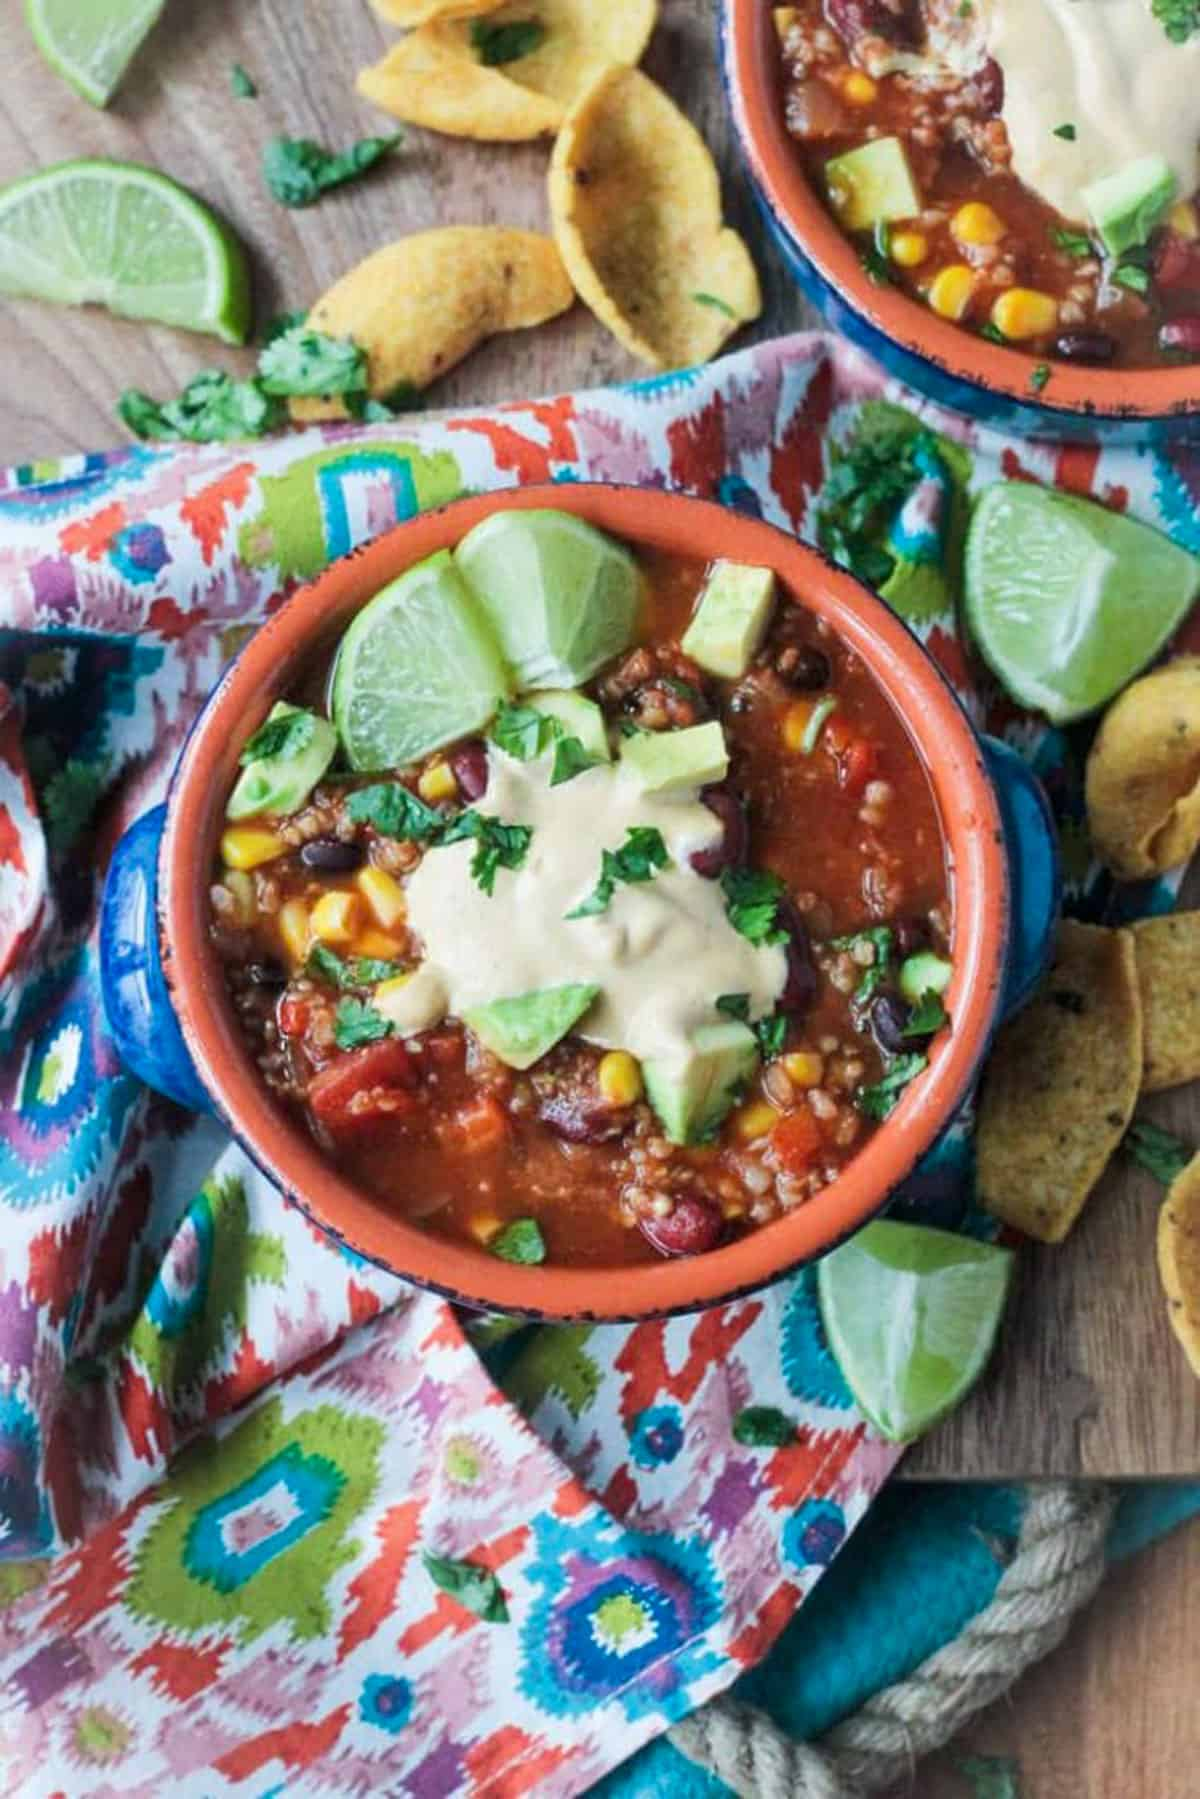 Taco Chili in a blue bowl topped with vegan ranch, cilantro, and lime wedges.